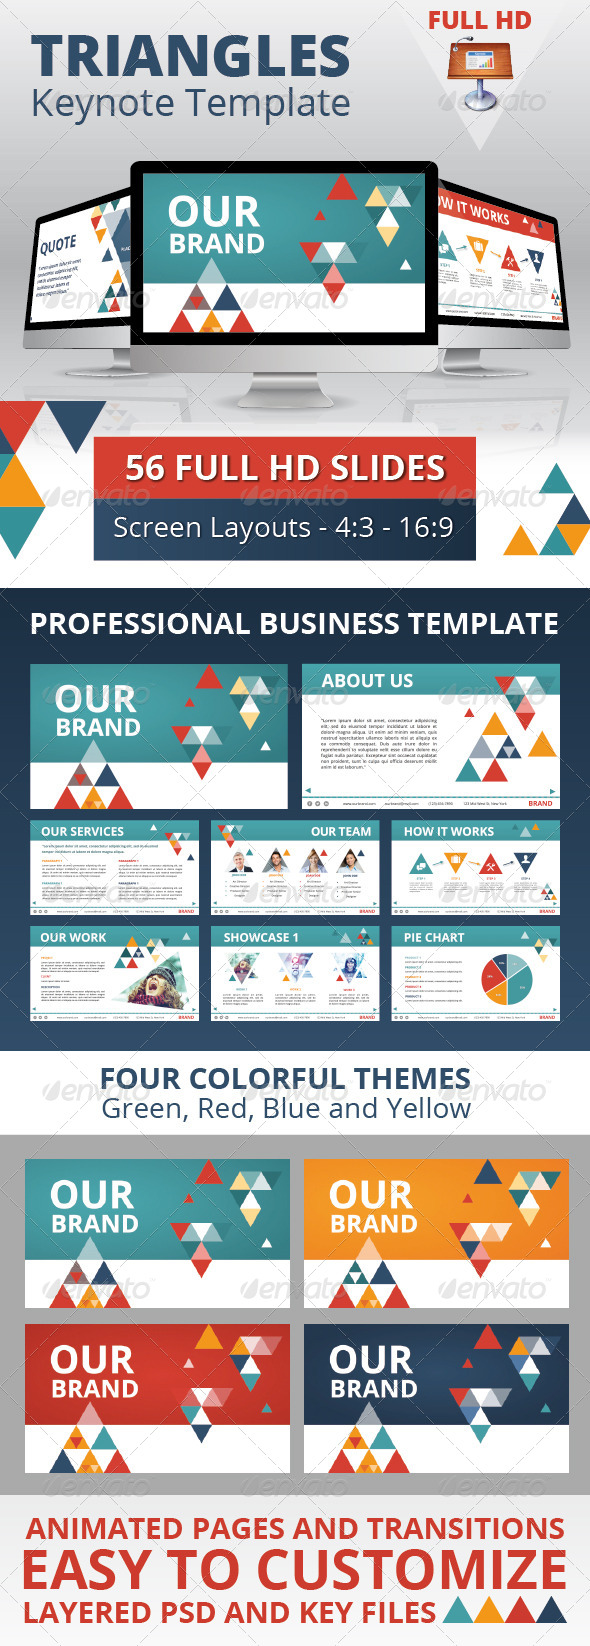 GraphicRiver Triangles Business Keynote Template 4826850